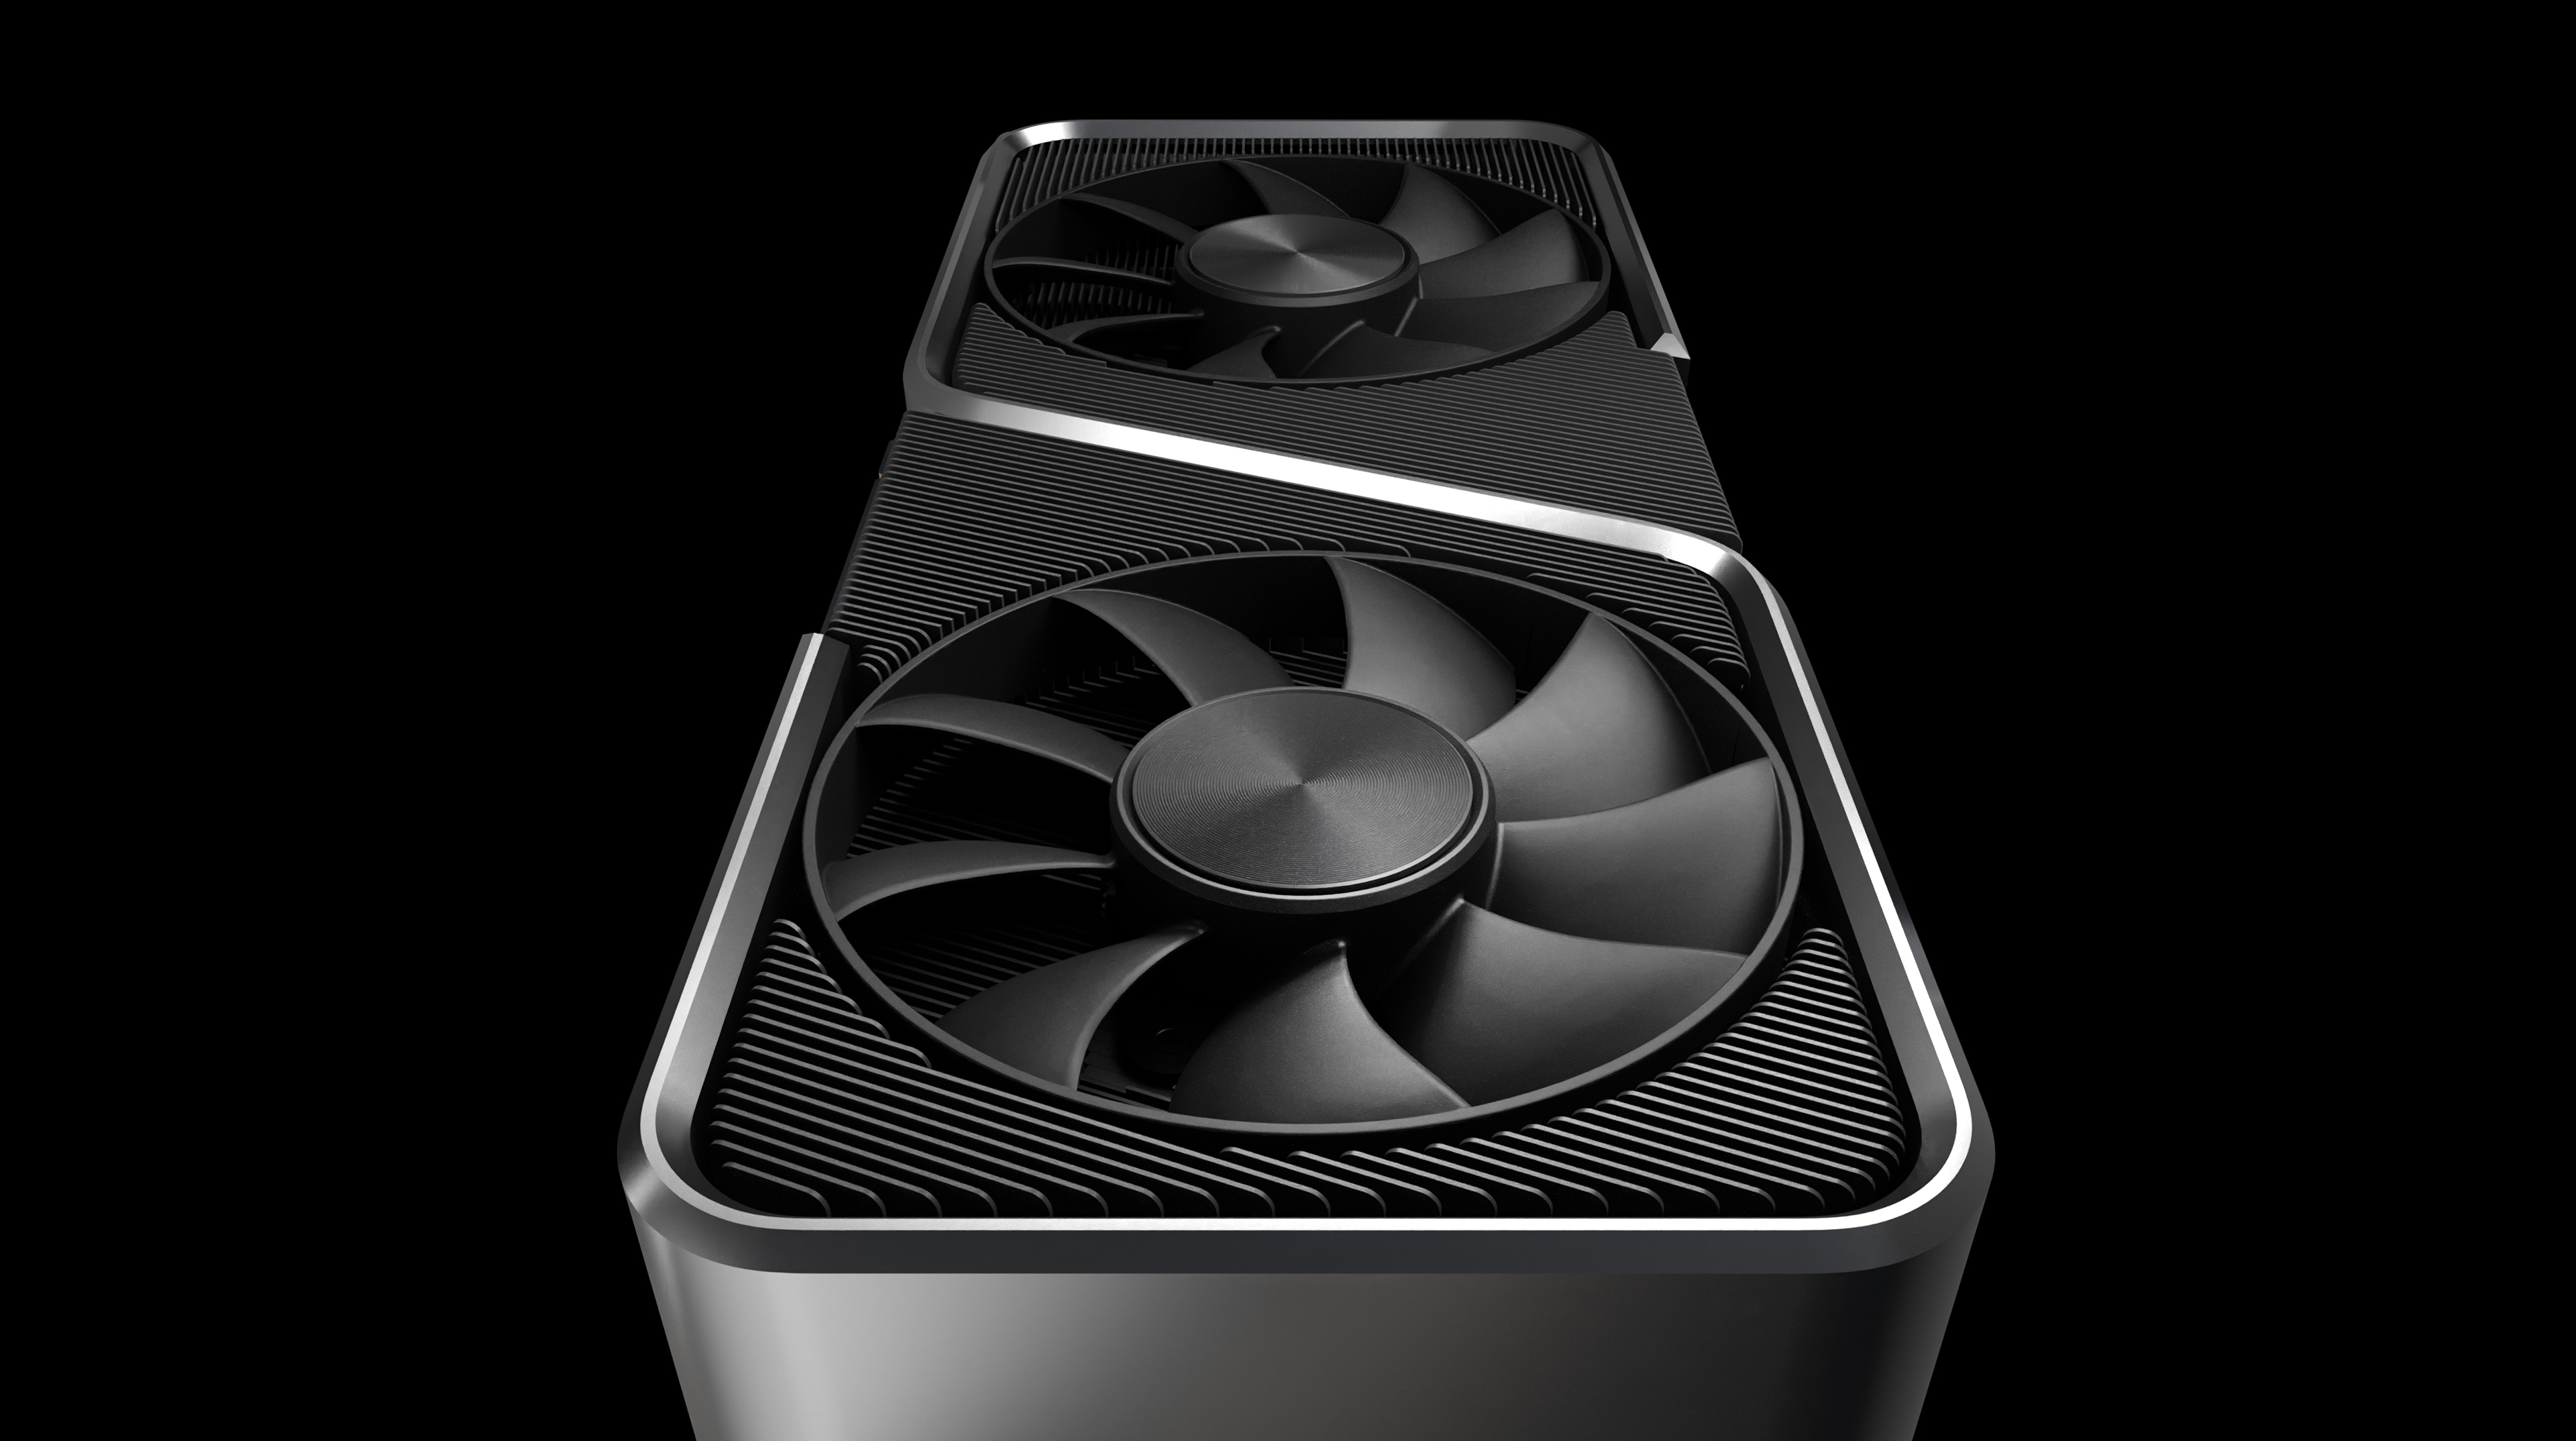 Nvidia could hold off RTX 3060 Ti until December 2 to undercut AMD RX 6000 GPUs